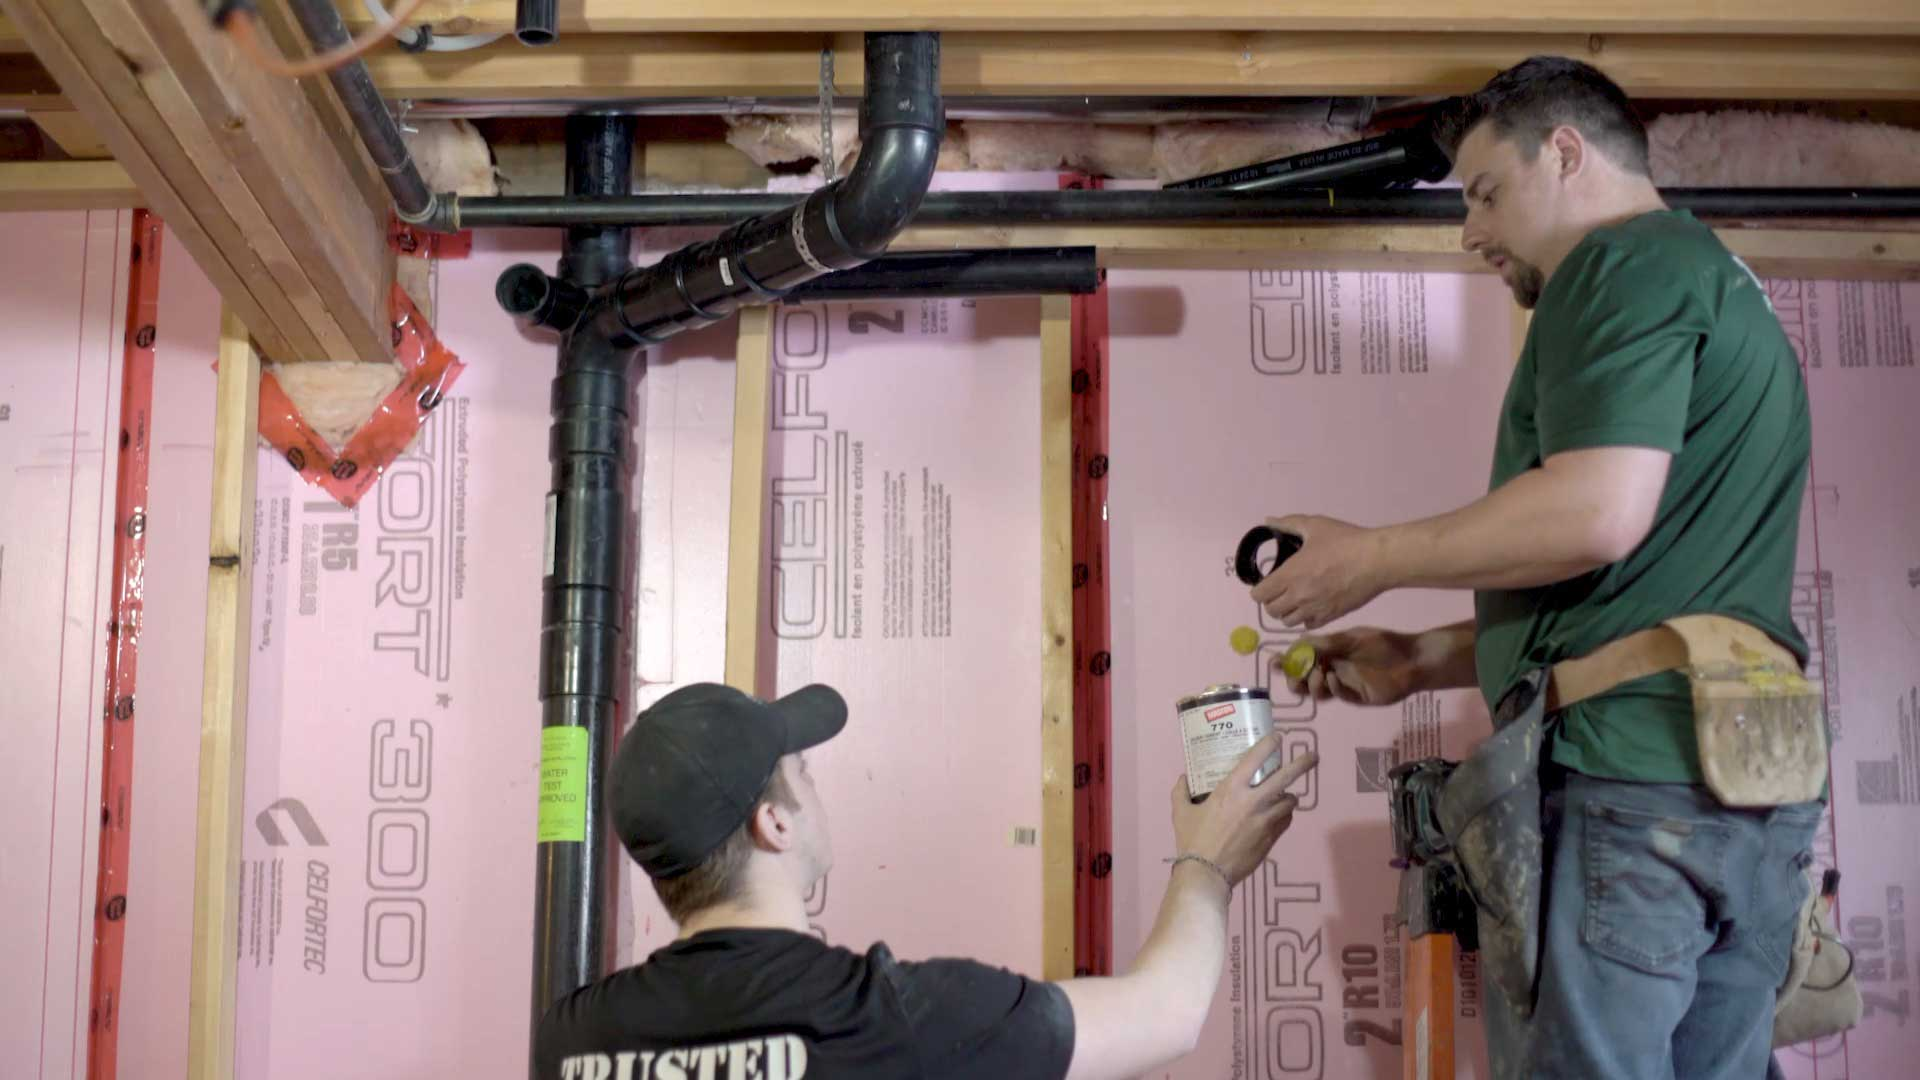 Renovations and new construction plumbing and heating projects